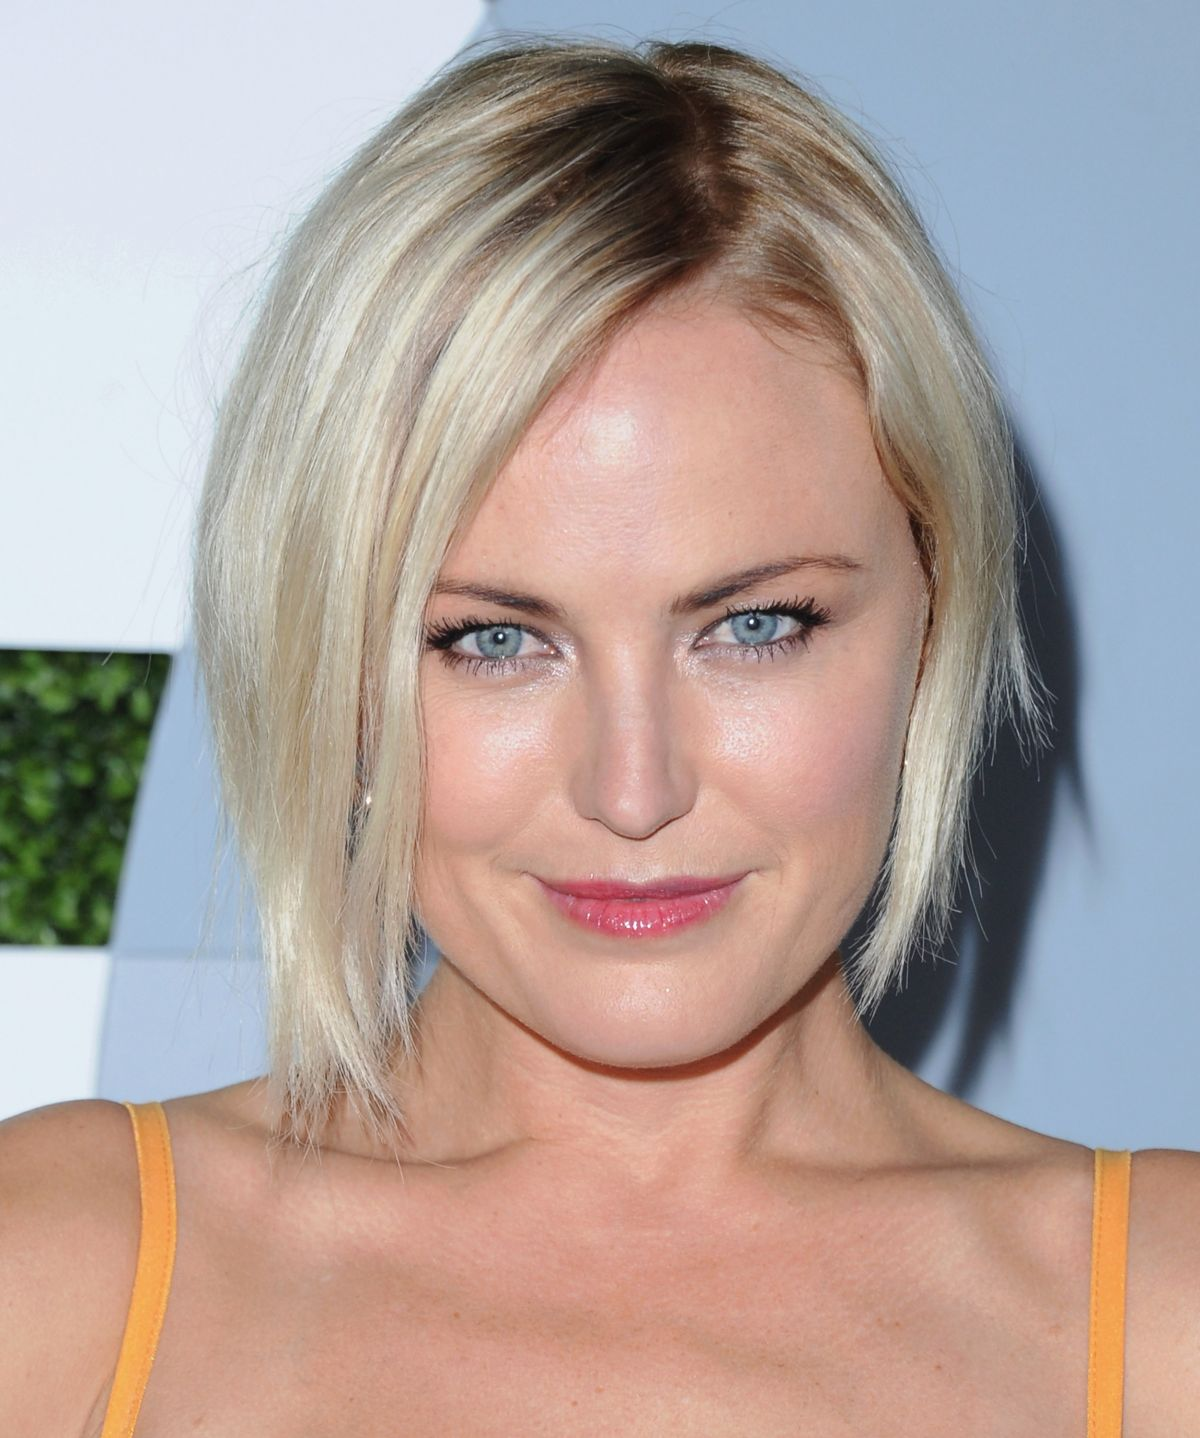 malin-akerman-coming-to-2014-gq-men-of-the-year-party-in-los-angeles_1